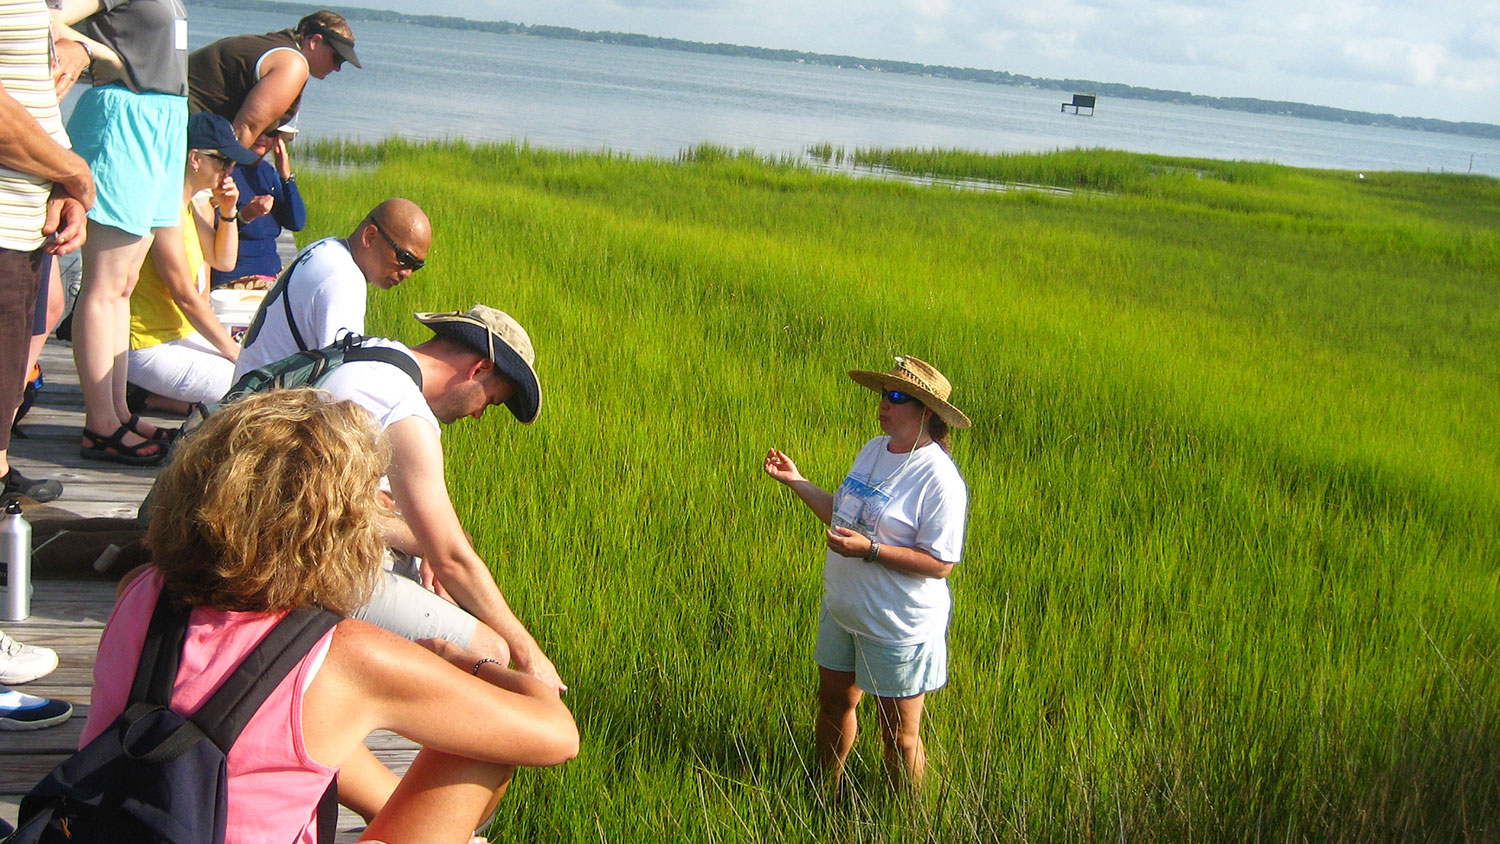 Woman standing in marsh giving instruction to people on a dock above